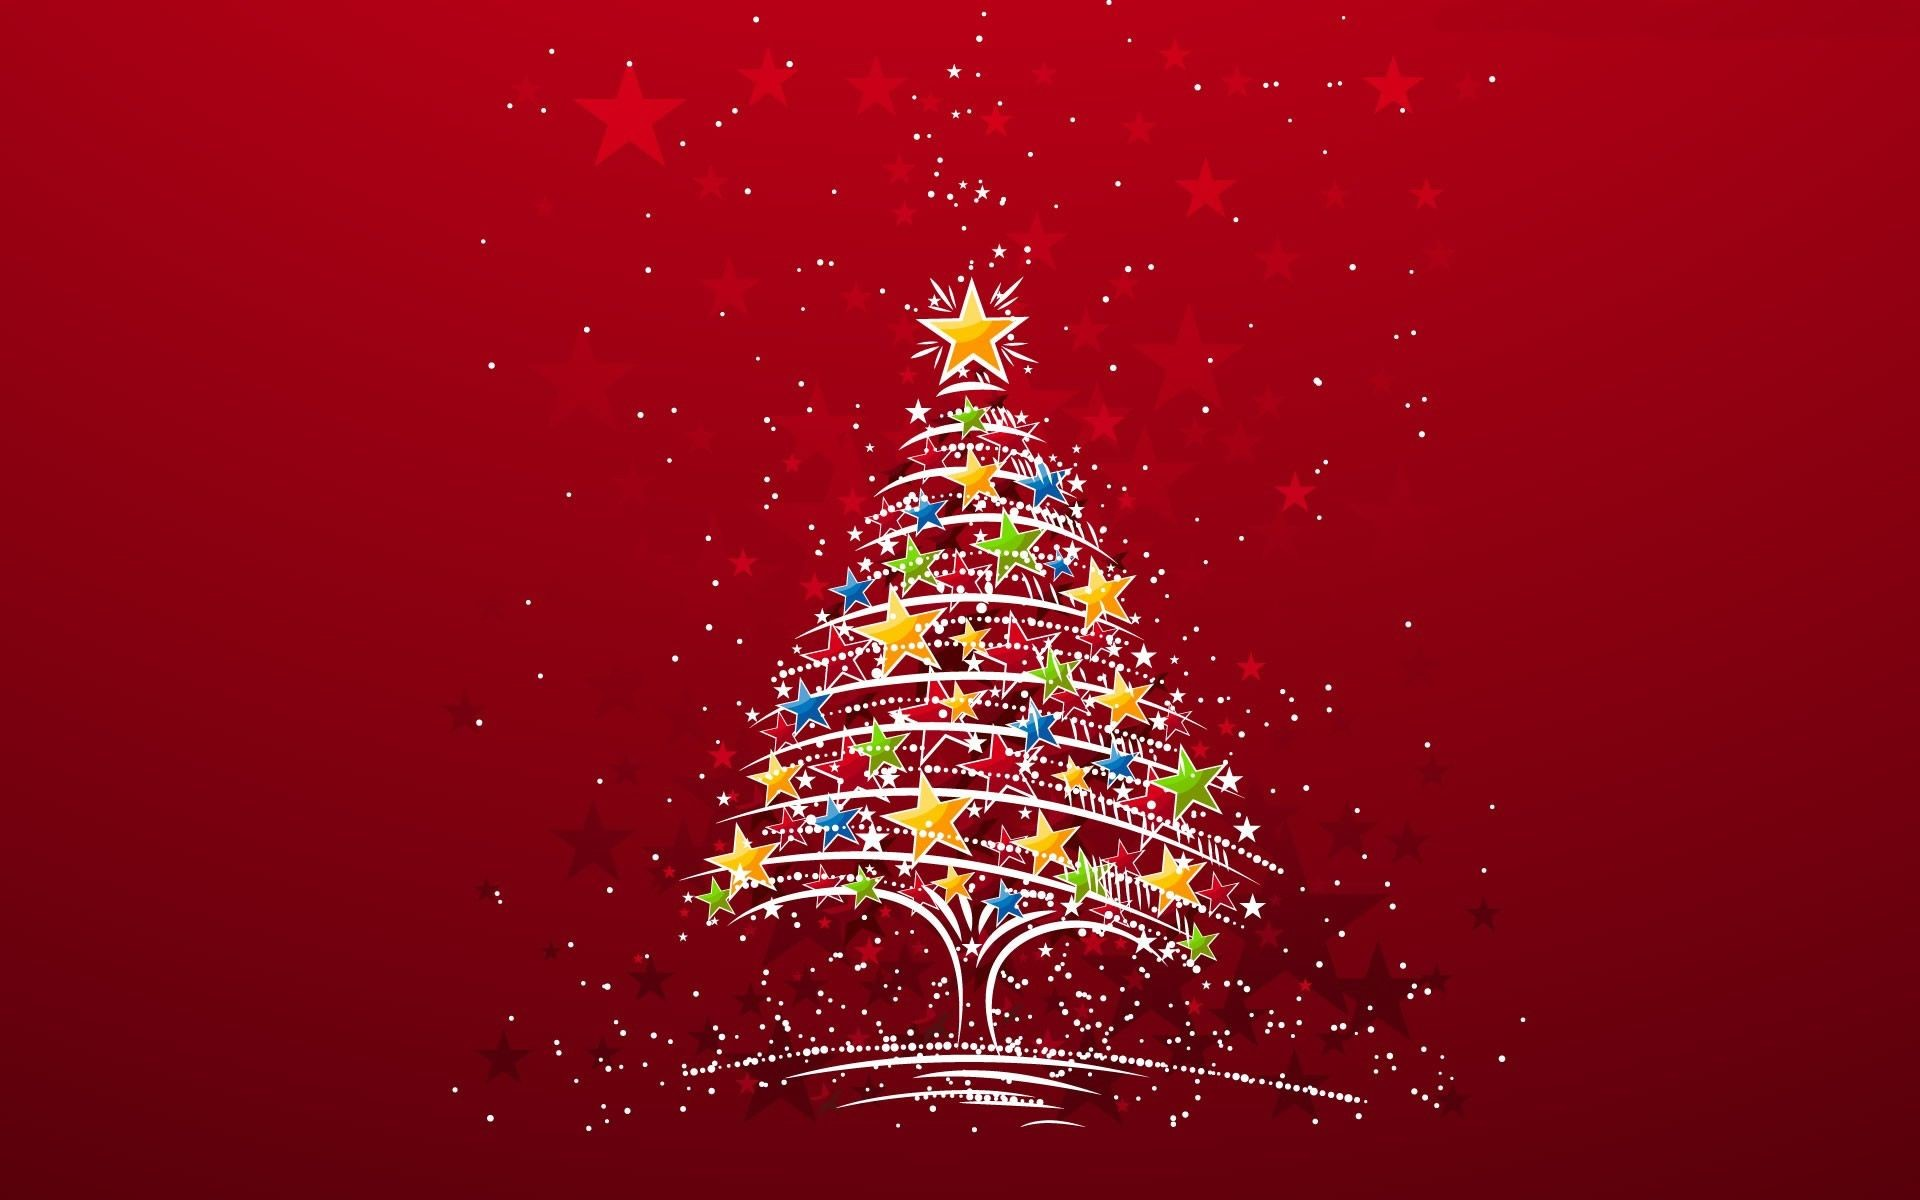 Christmas Hd Wallpaper.Christmas Phone Wallpapers 82 Background Pictures